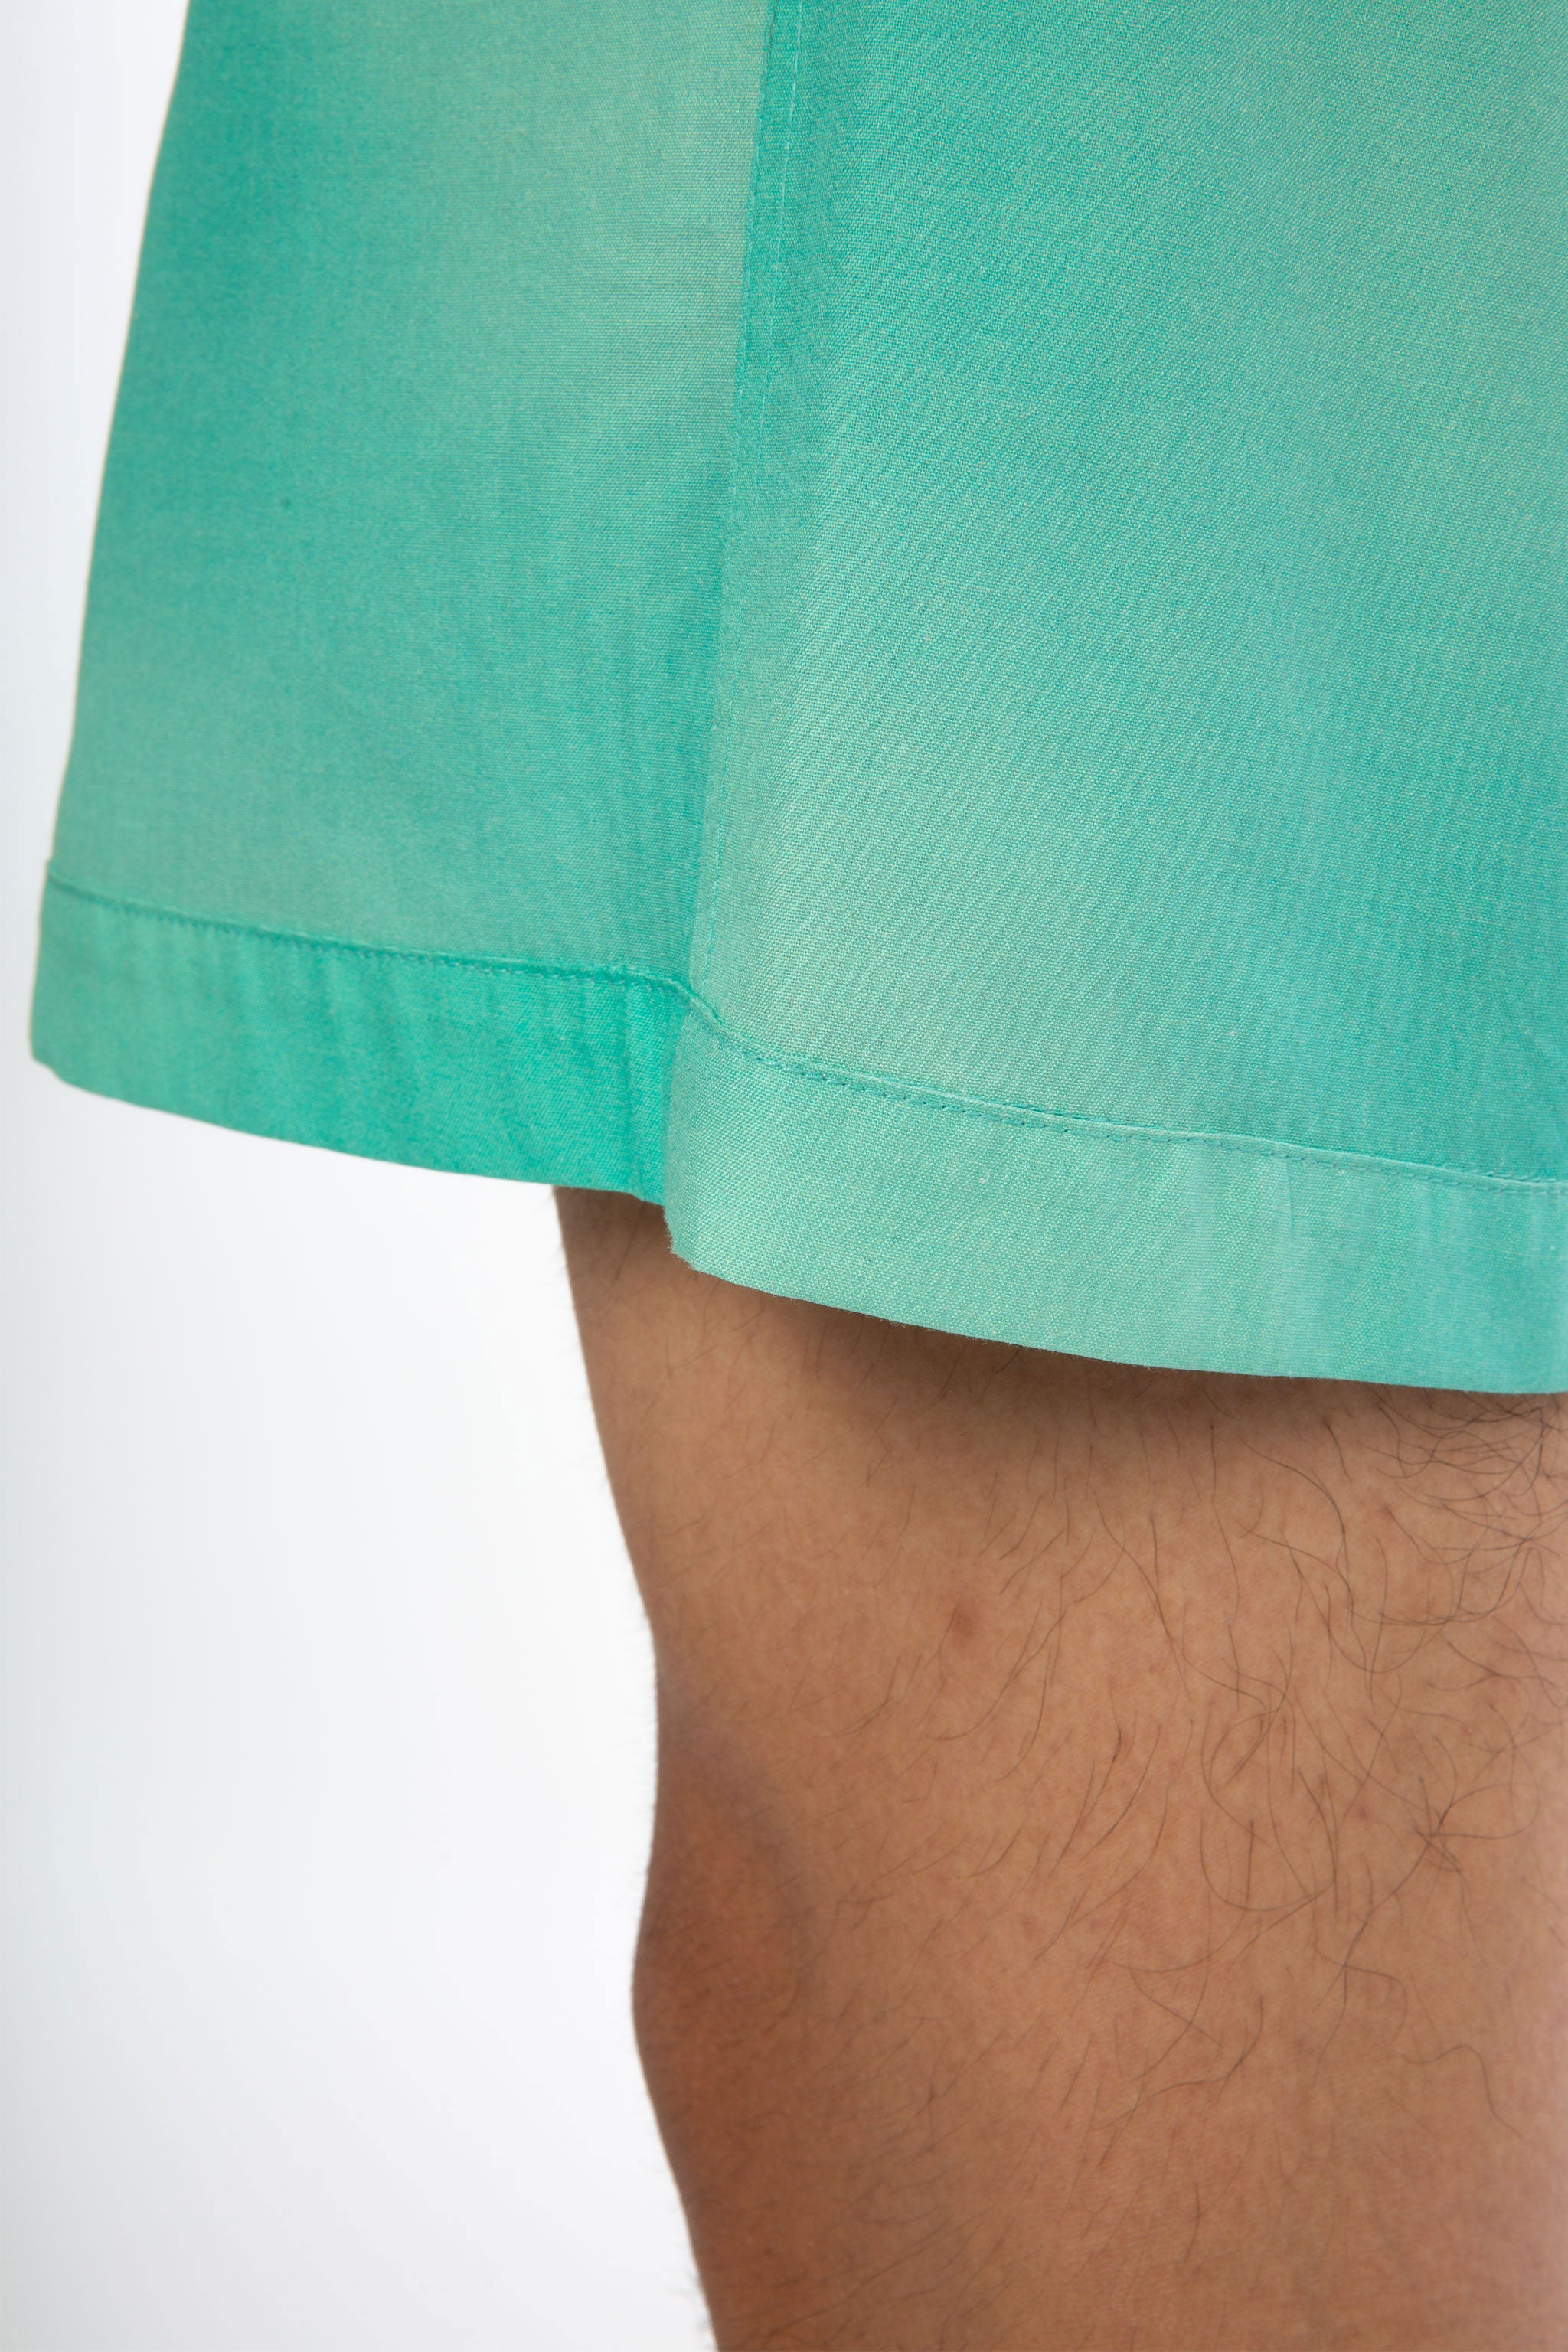 Goodfight SS19 Basic Short Jade